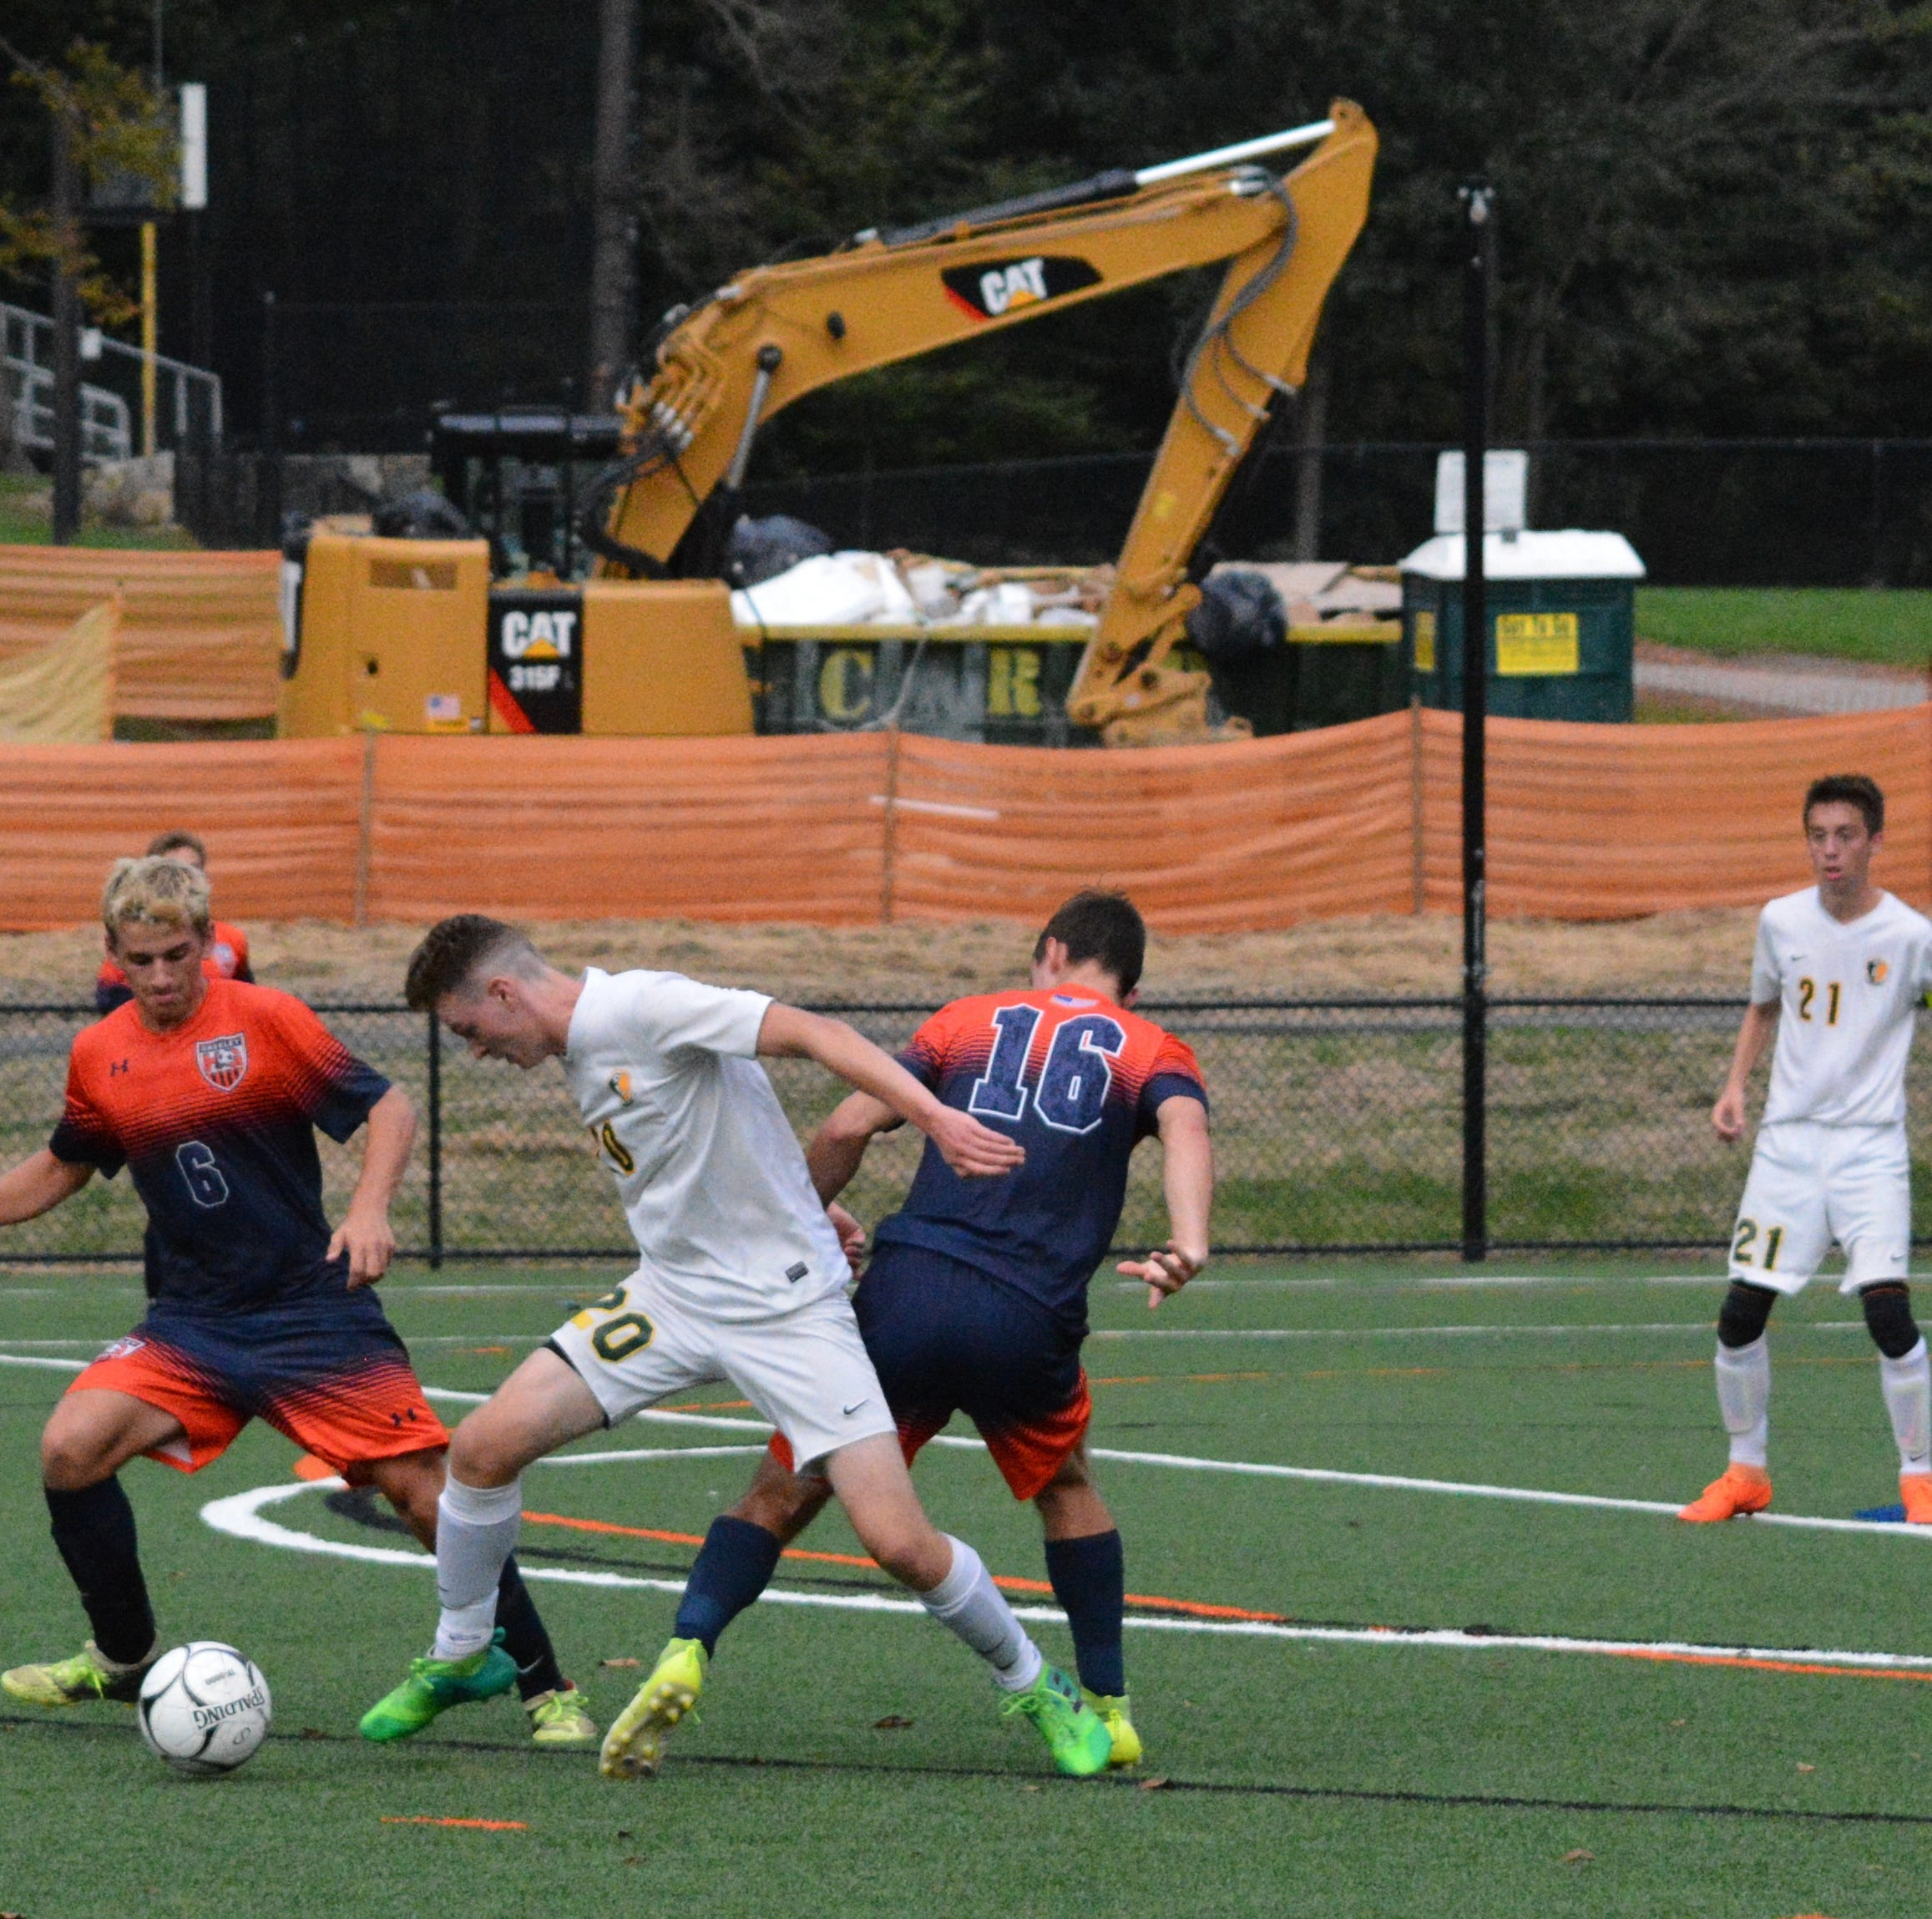 Boys soccer: Class A tournament primer; Greeley, TZ, Yorktown, Somers headline deep field